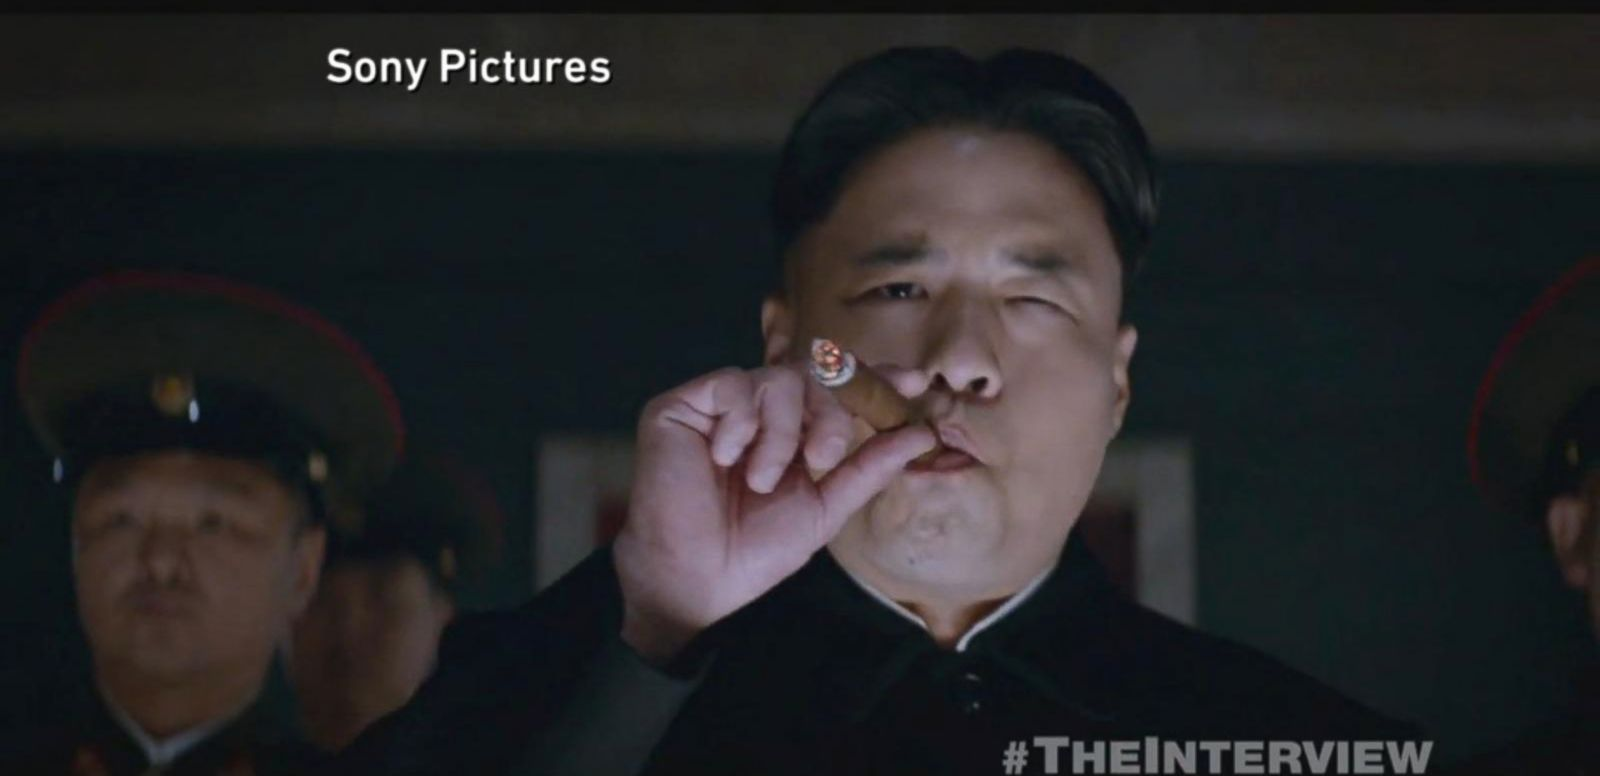 VIDEO: Sony Delivers Christmas Surprise by Releasing 'The Interview'